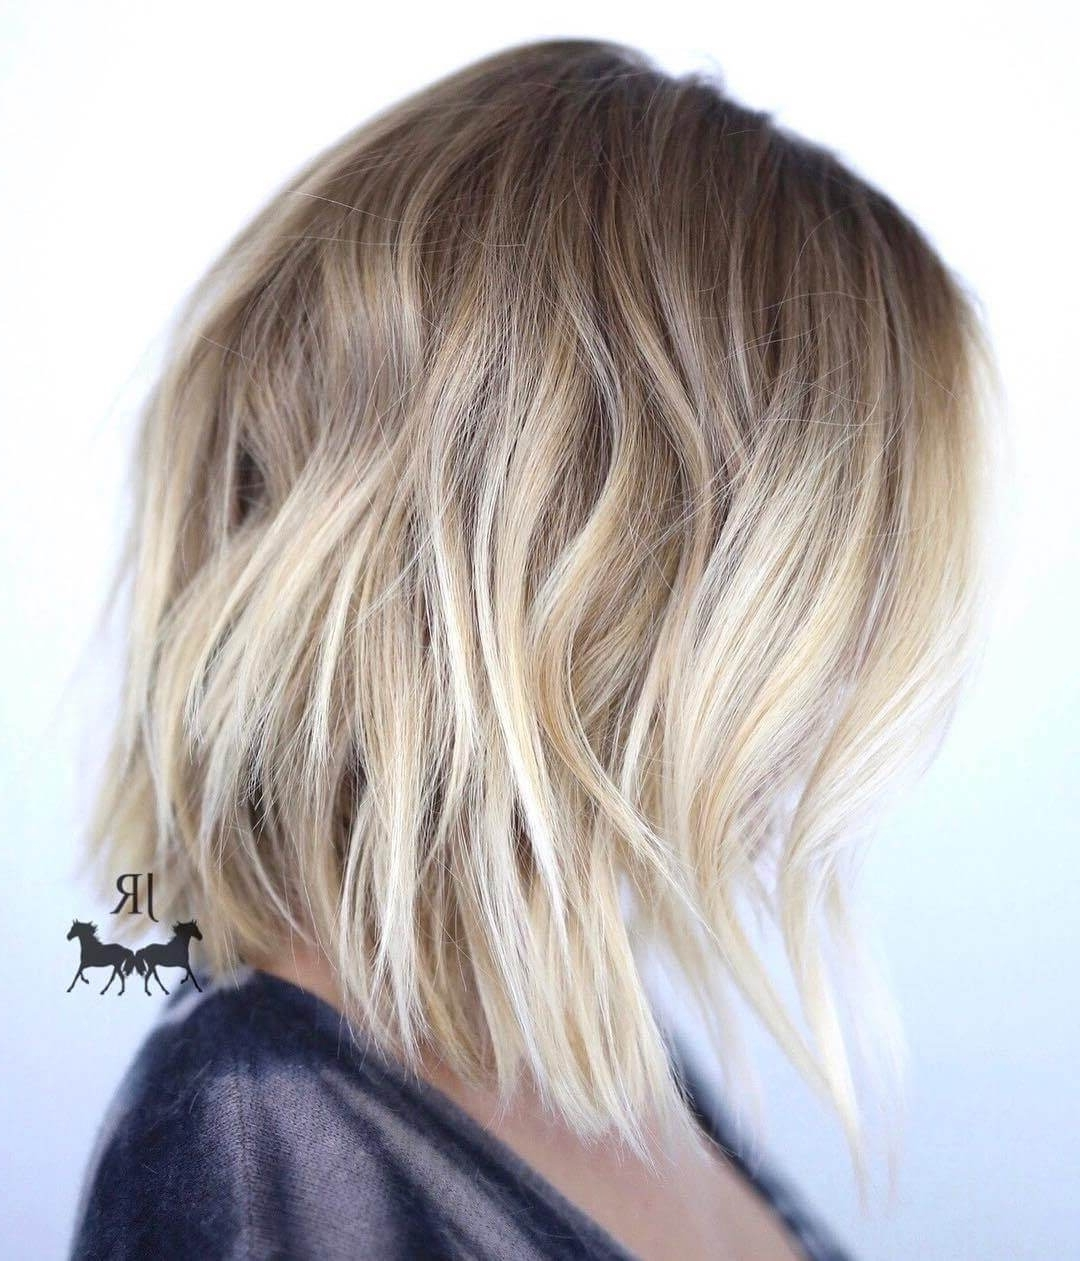 Newest Bright Long Bob Blonde Hairstyles In 50 Fresh Short Blonde Hair Ideas To Update Your Style In  (View 13 of 20)